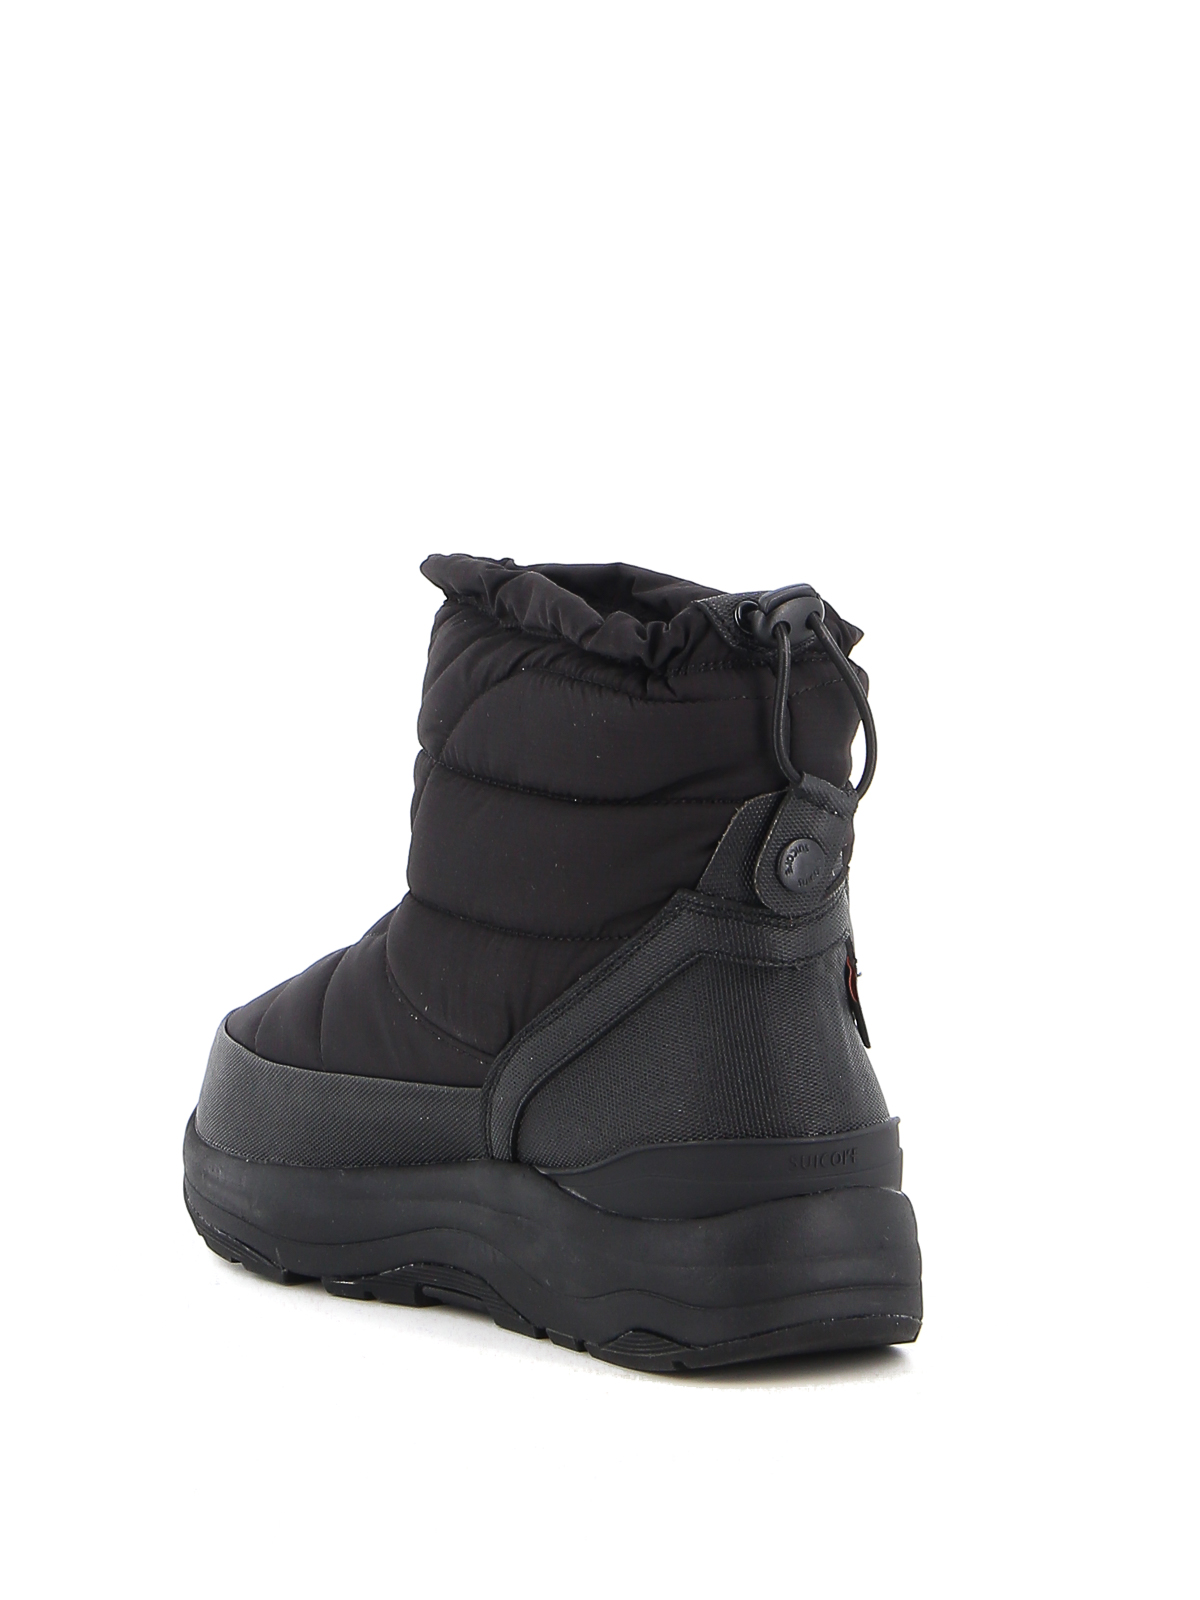 Picture of Suicoke | Bower-Evab